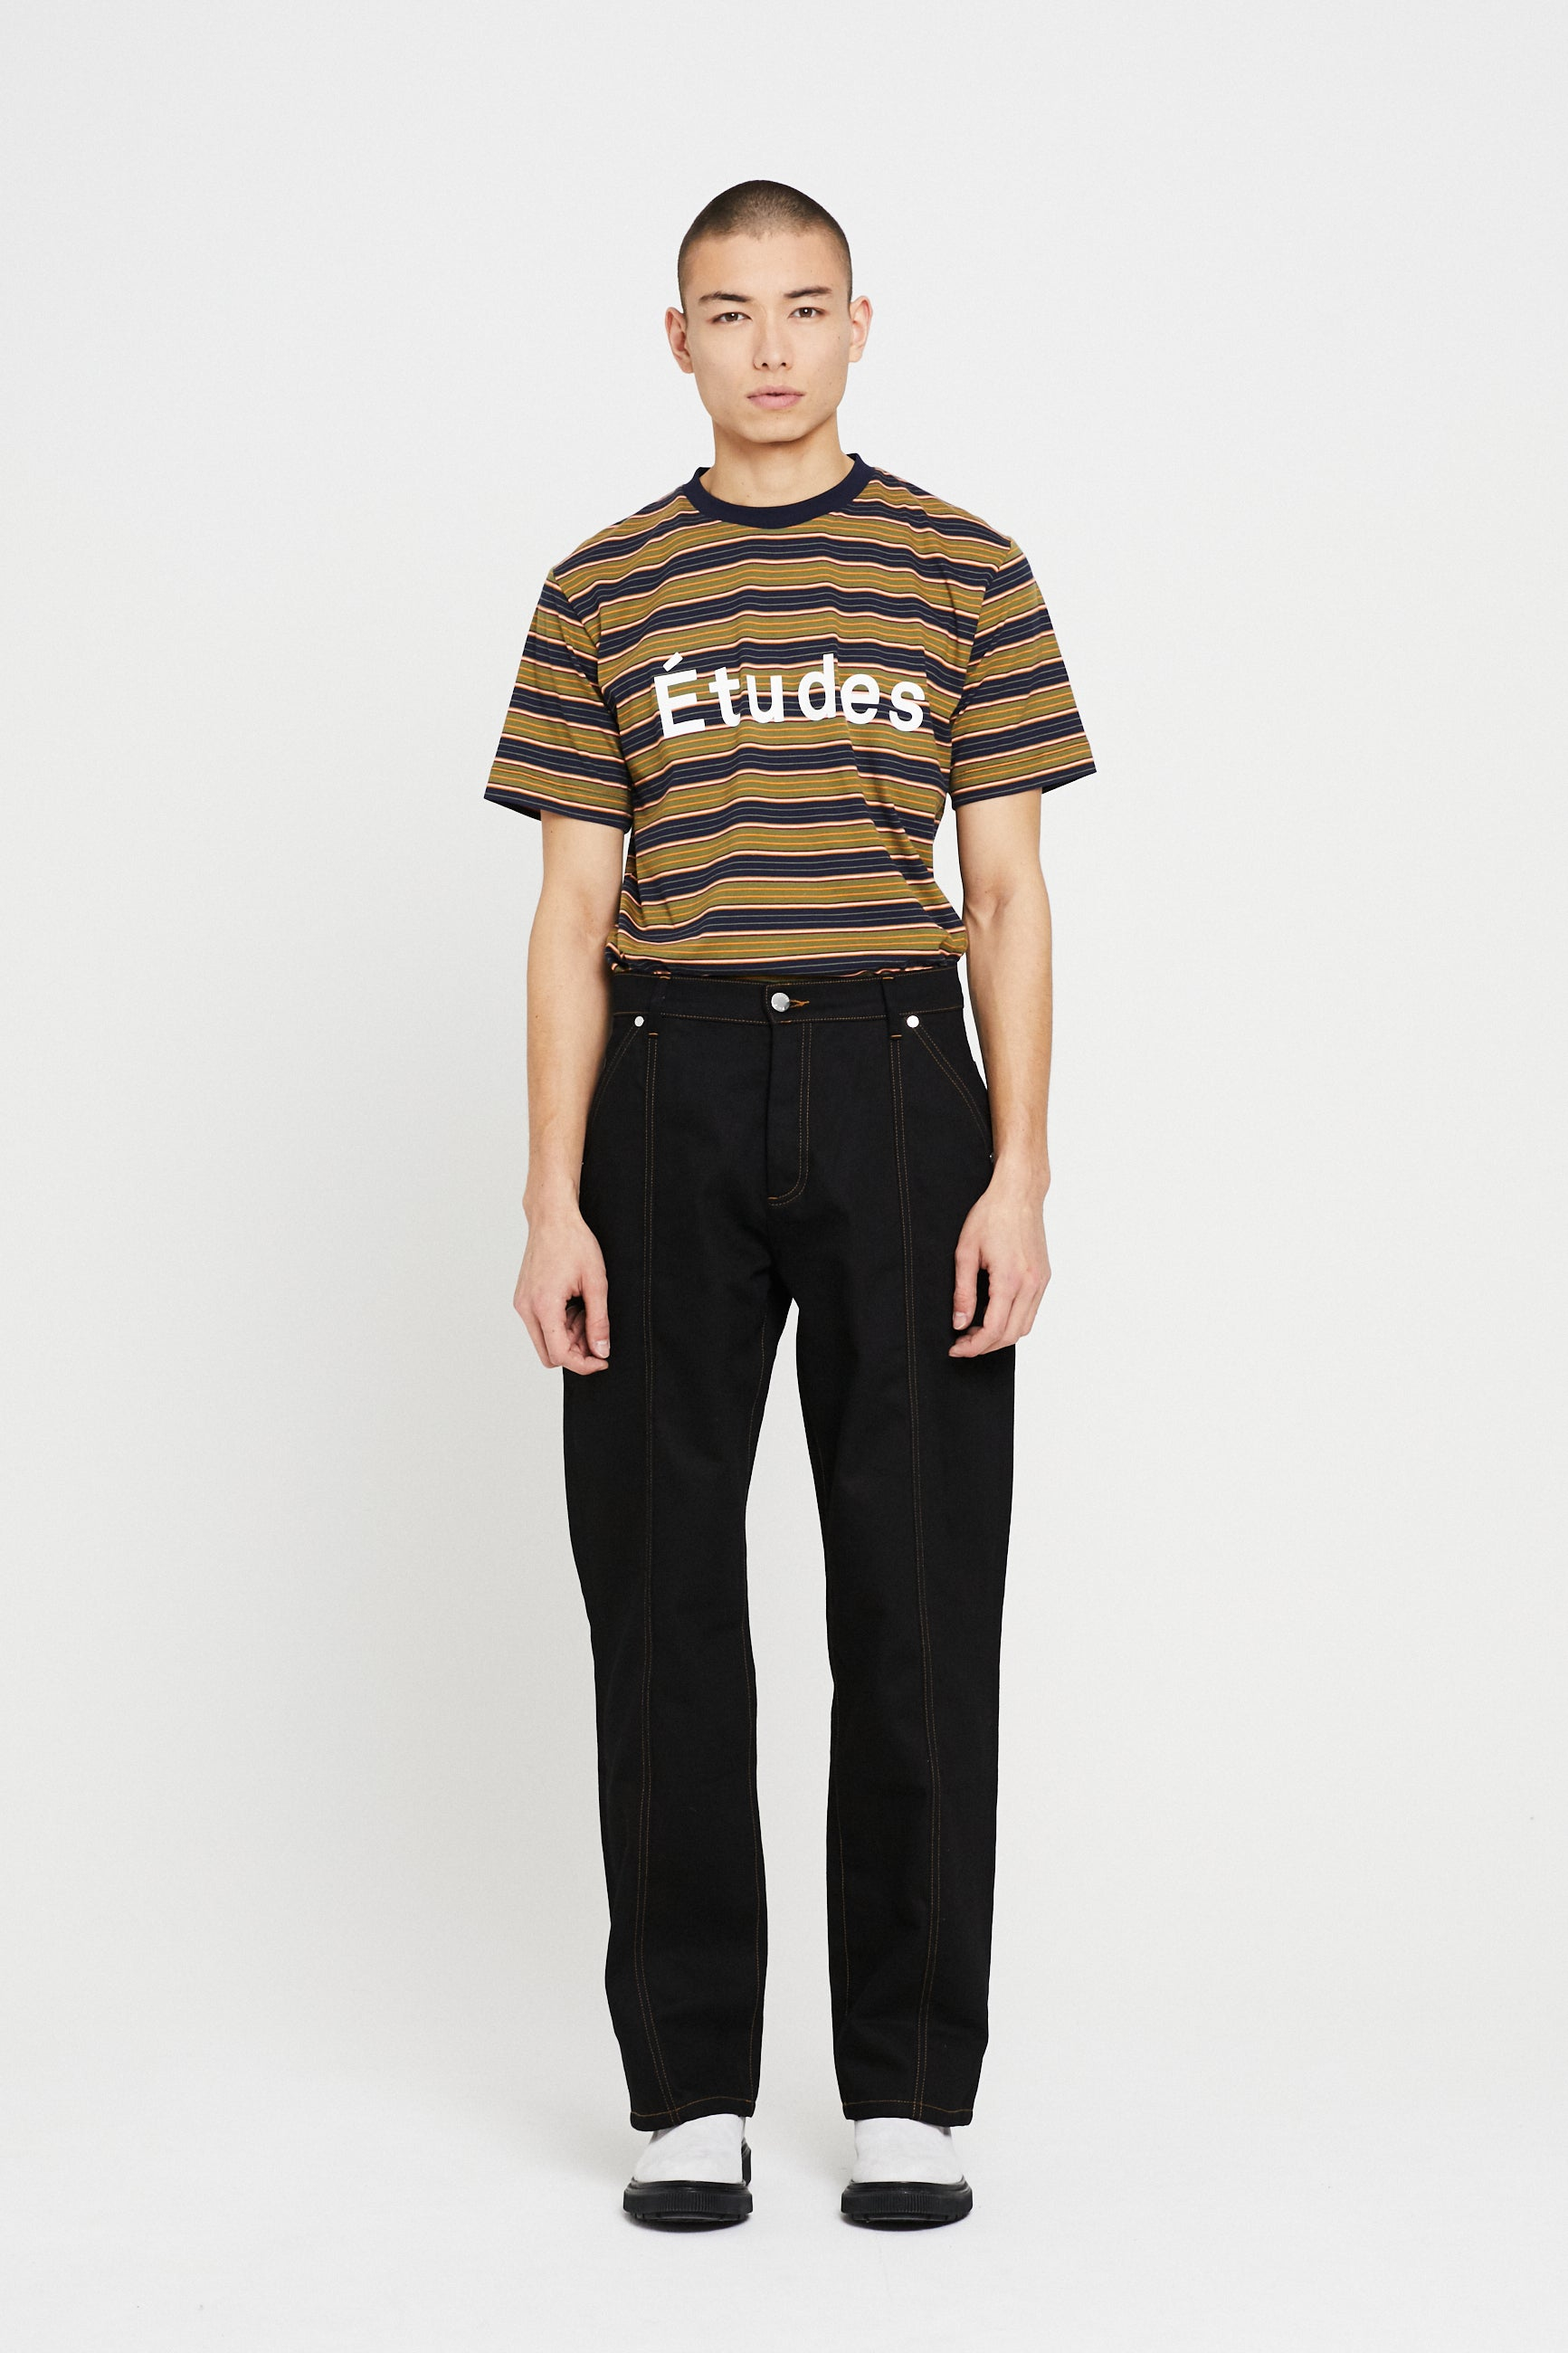 Études Edge Black Trousers 1